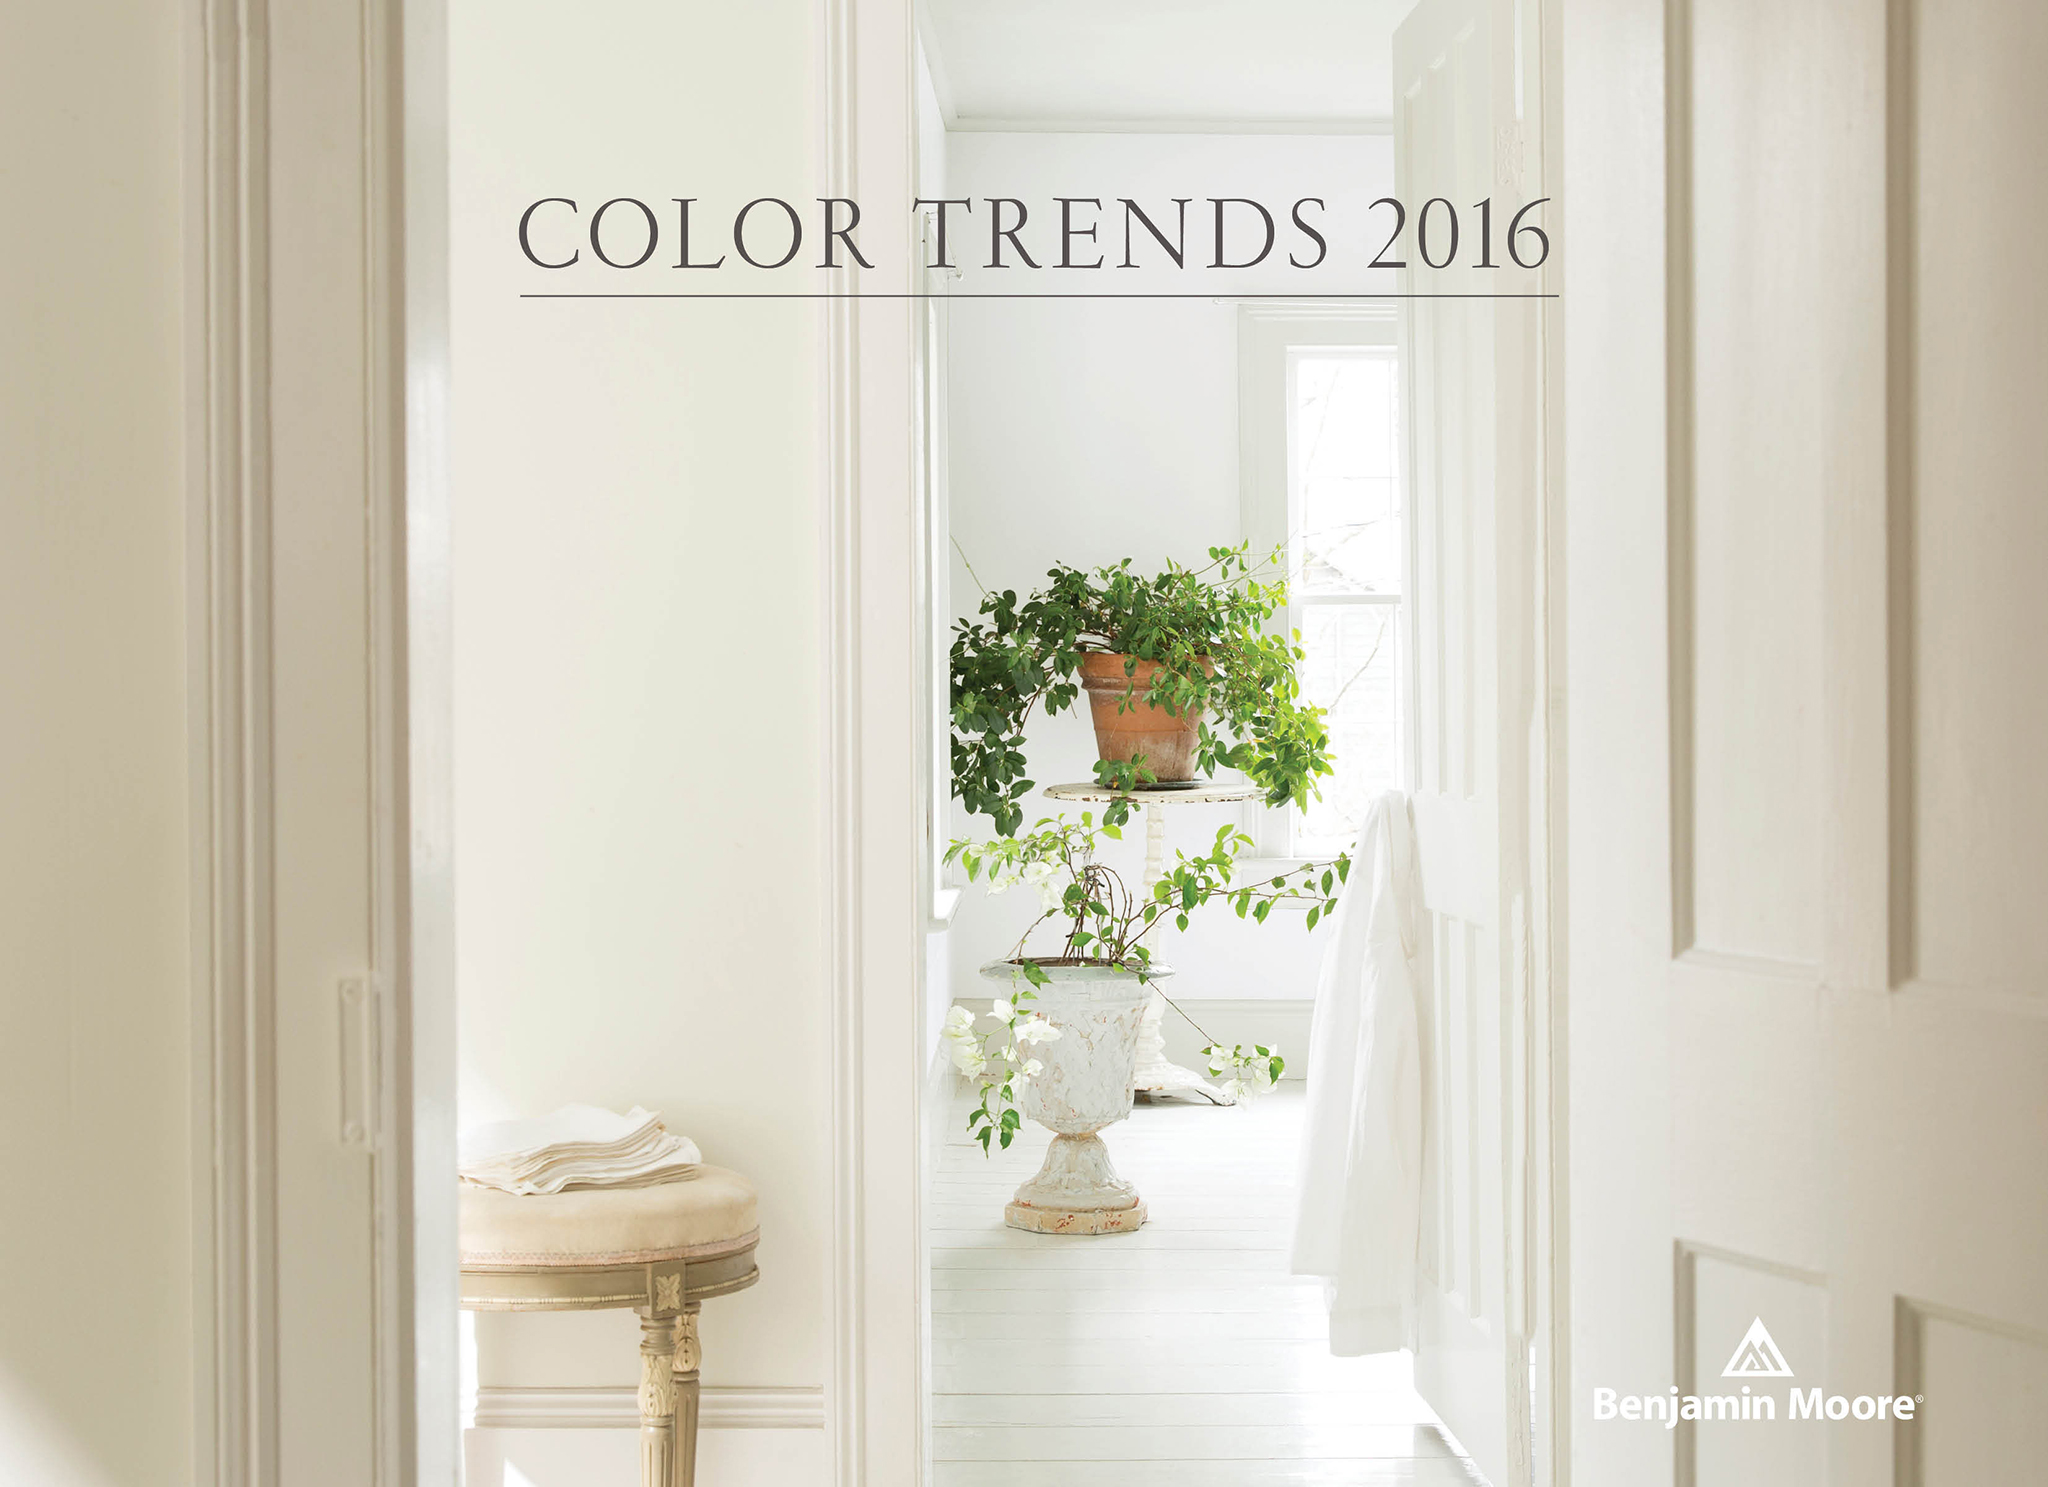 Benjamin Moore Color Trends 2016 Fashion Trendsetter